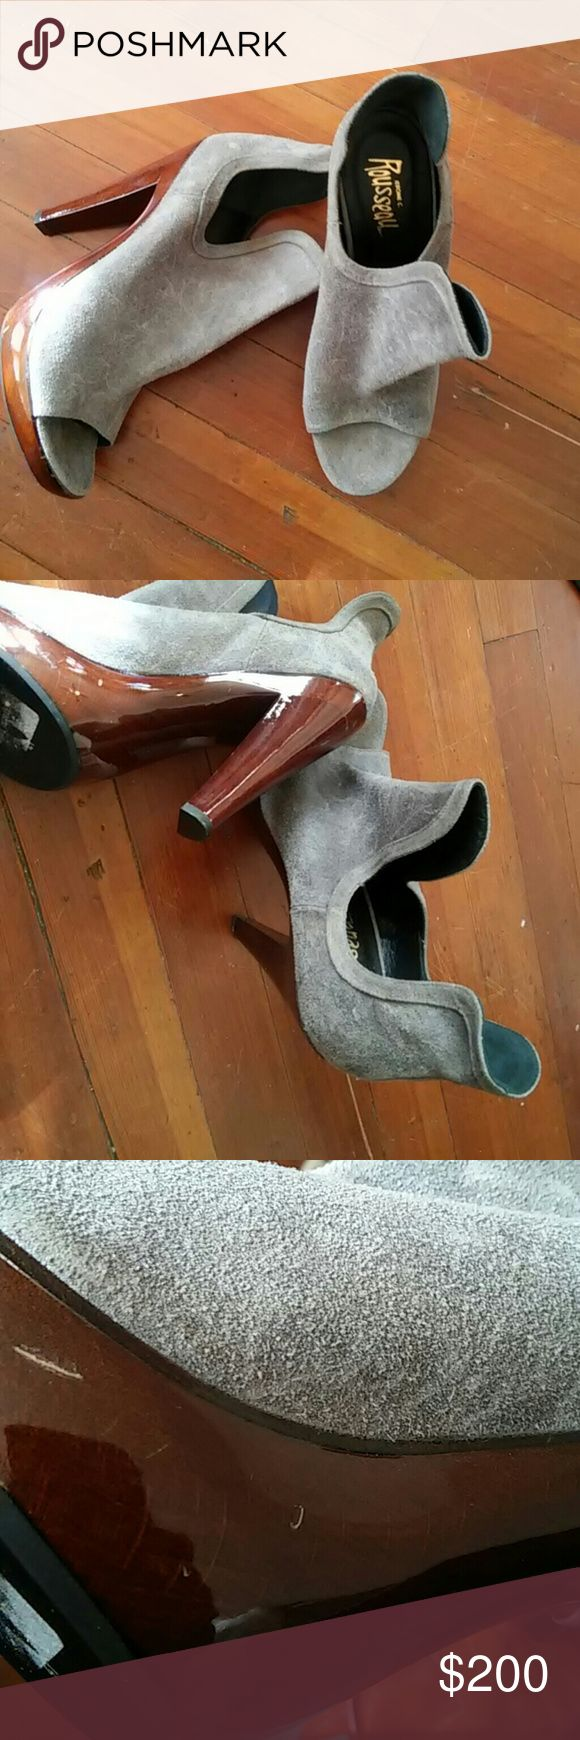 Jerome C Rouseau Italian shoe Vintage smoke grey cut out shoe with wooden heels. Shoe has never been worn but does have a few slight nicks on the heel. The box is not included. Shoes Heels